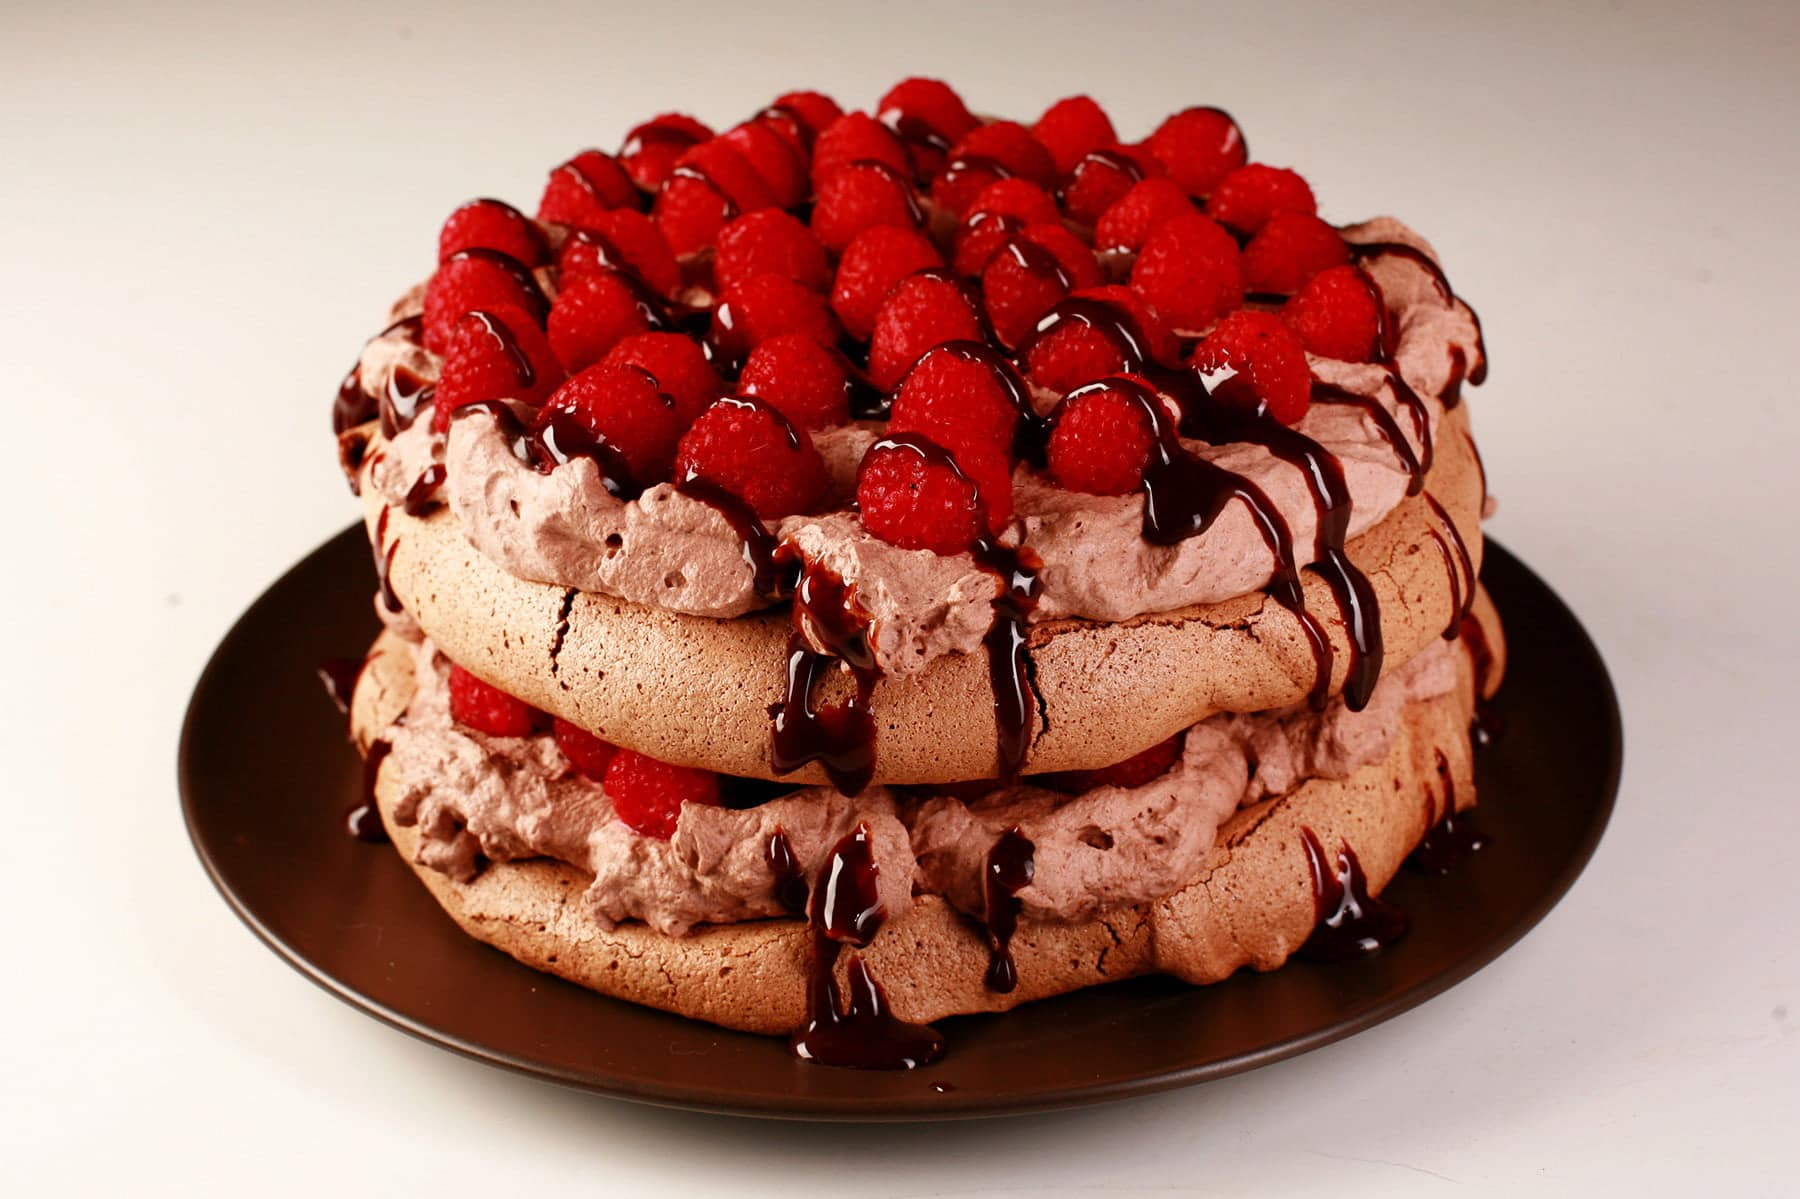 A double layered chocolate pavlova on a brown plate. Two layers of chocolate meringue are sandwiches with layers of chocolate whipped cream and raspberries, drizzled with chocolate sauce.